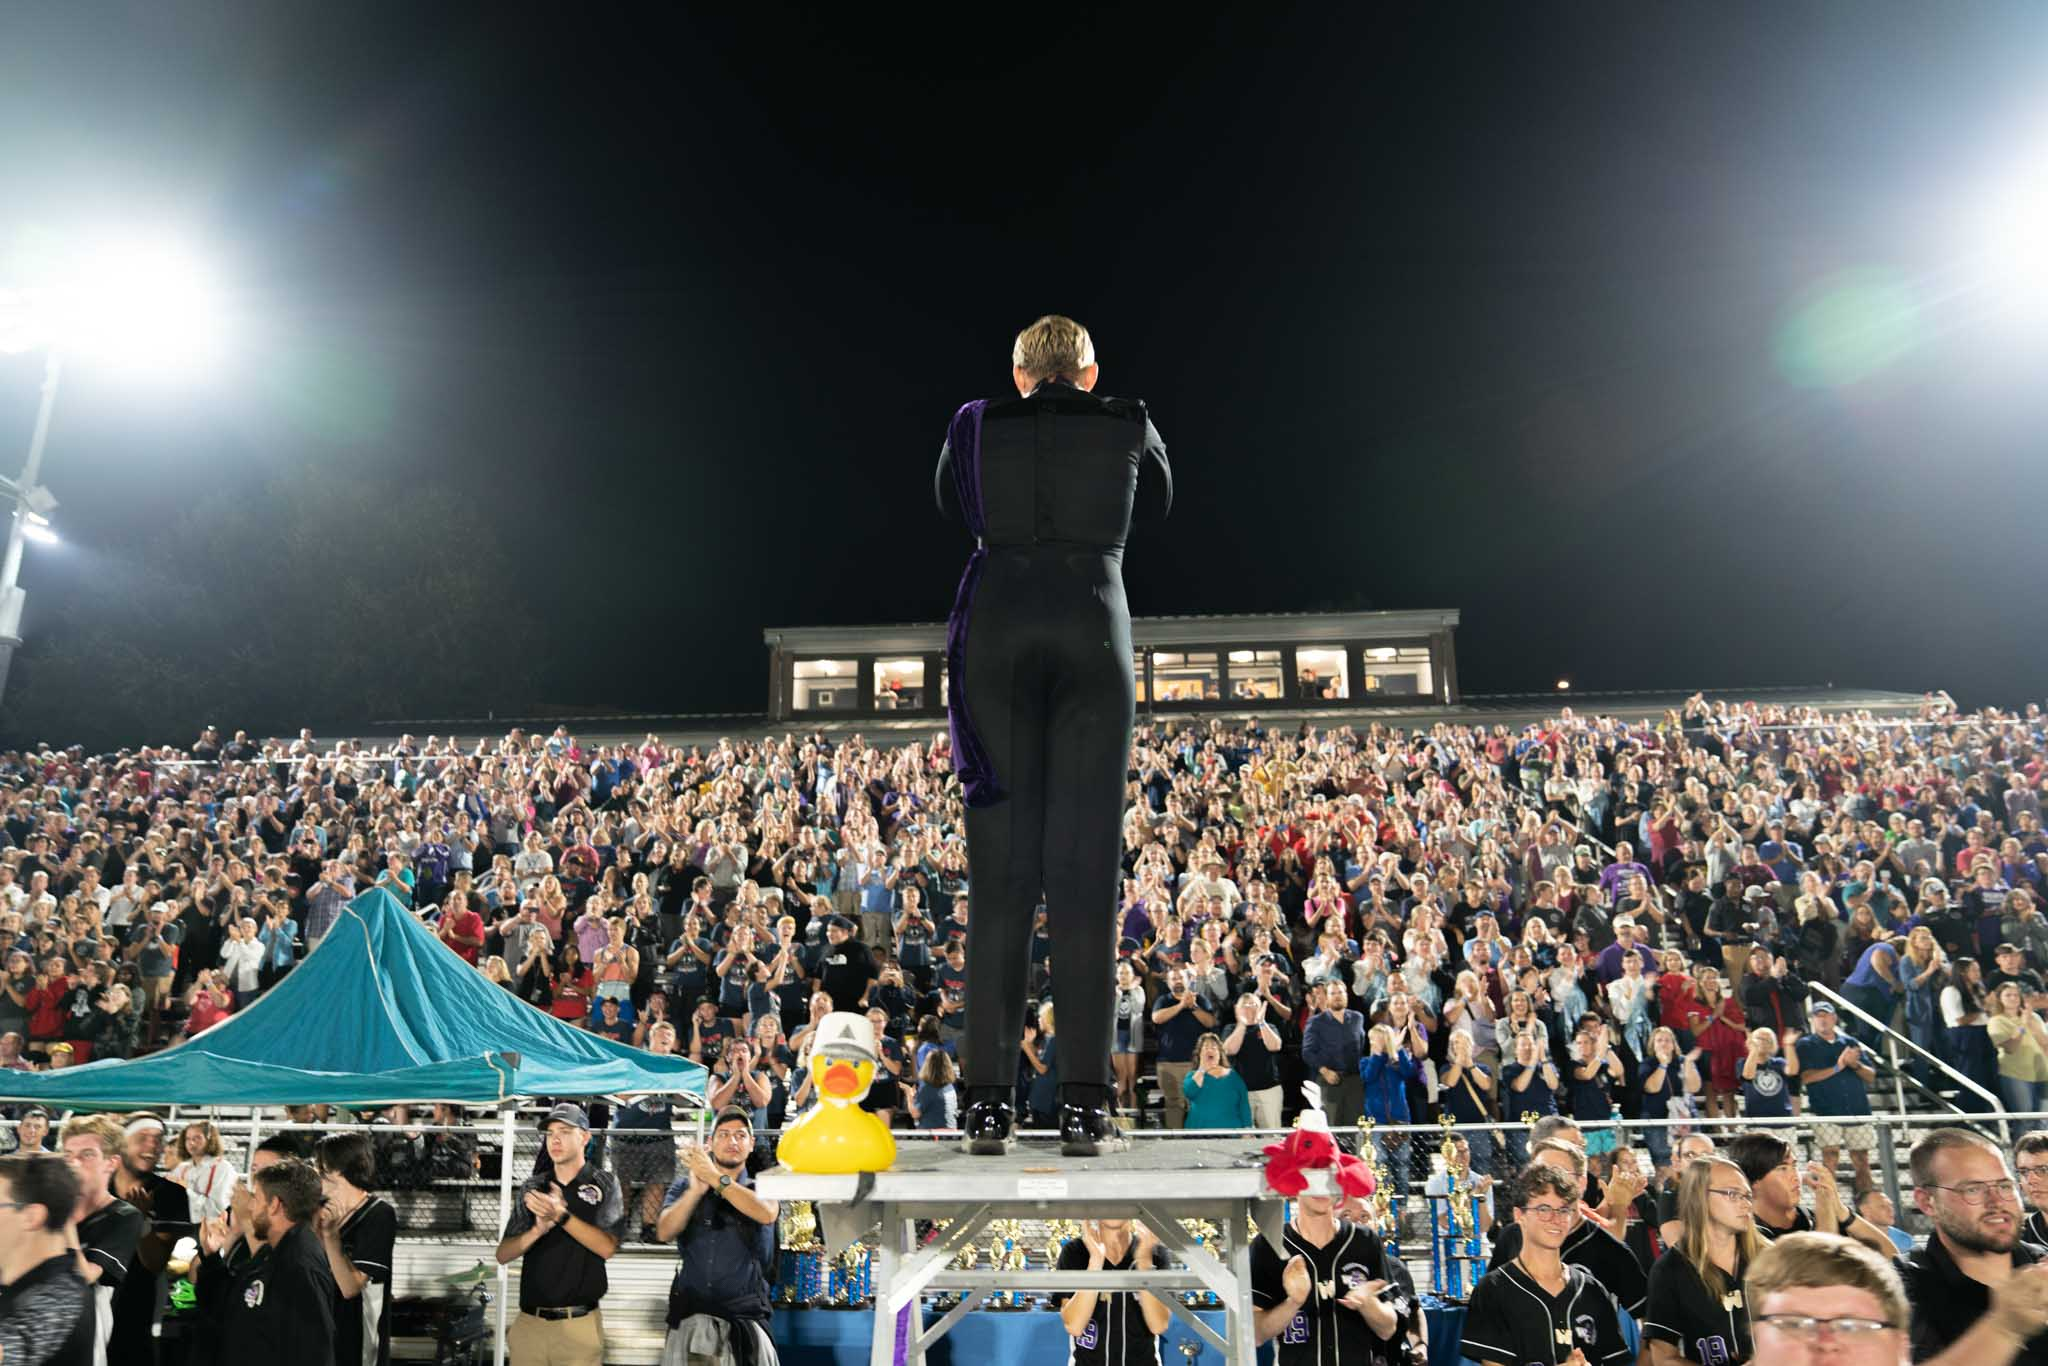 Drum major bows to crowd.